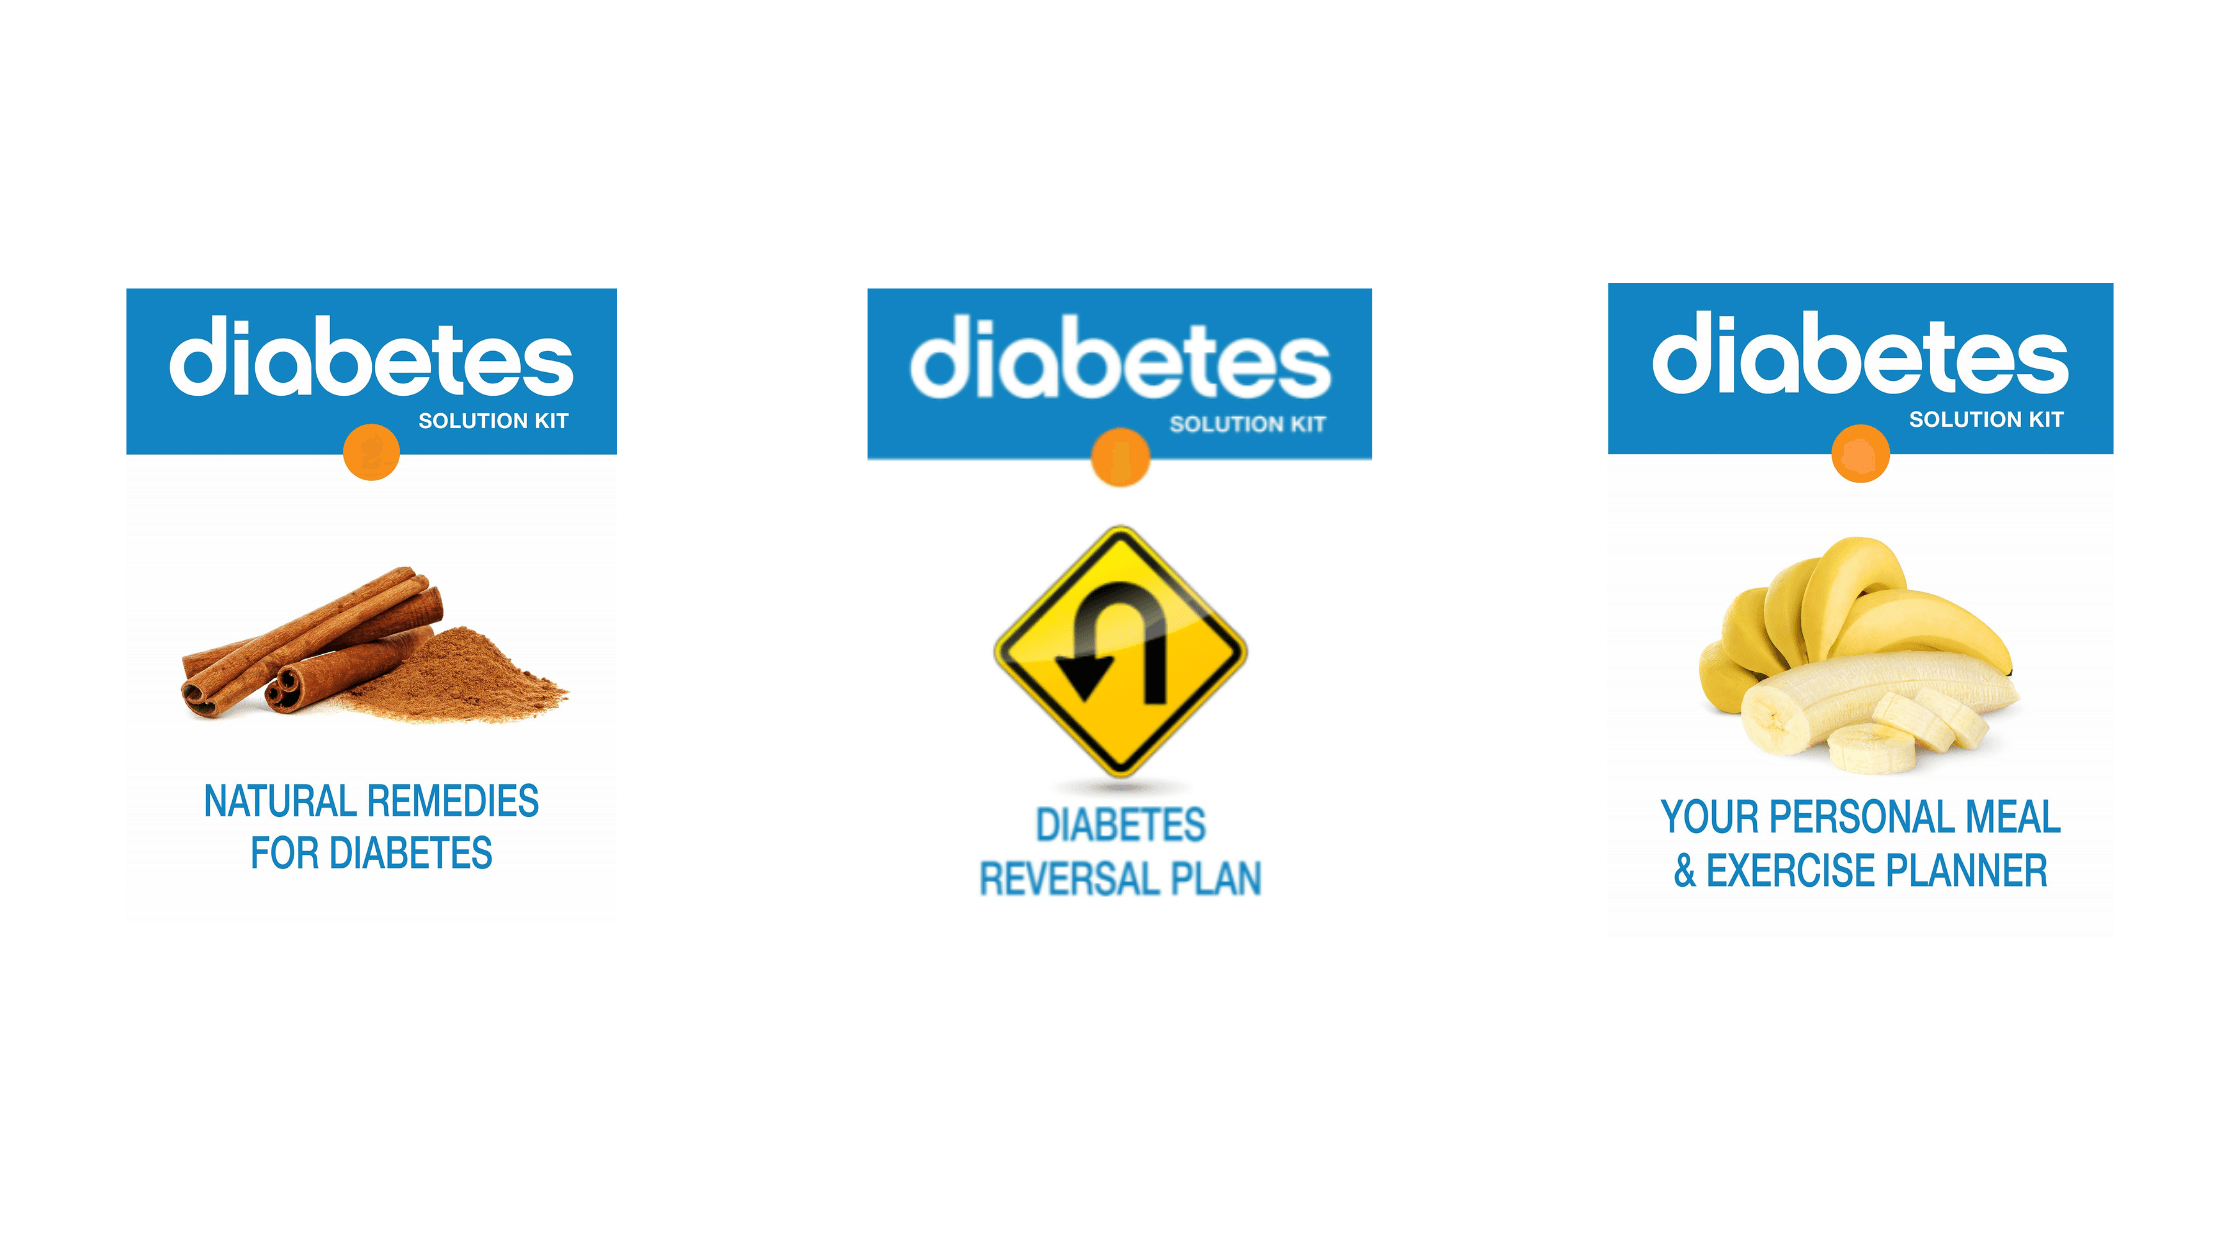 Diabetes Solution Kit - Included